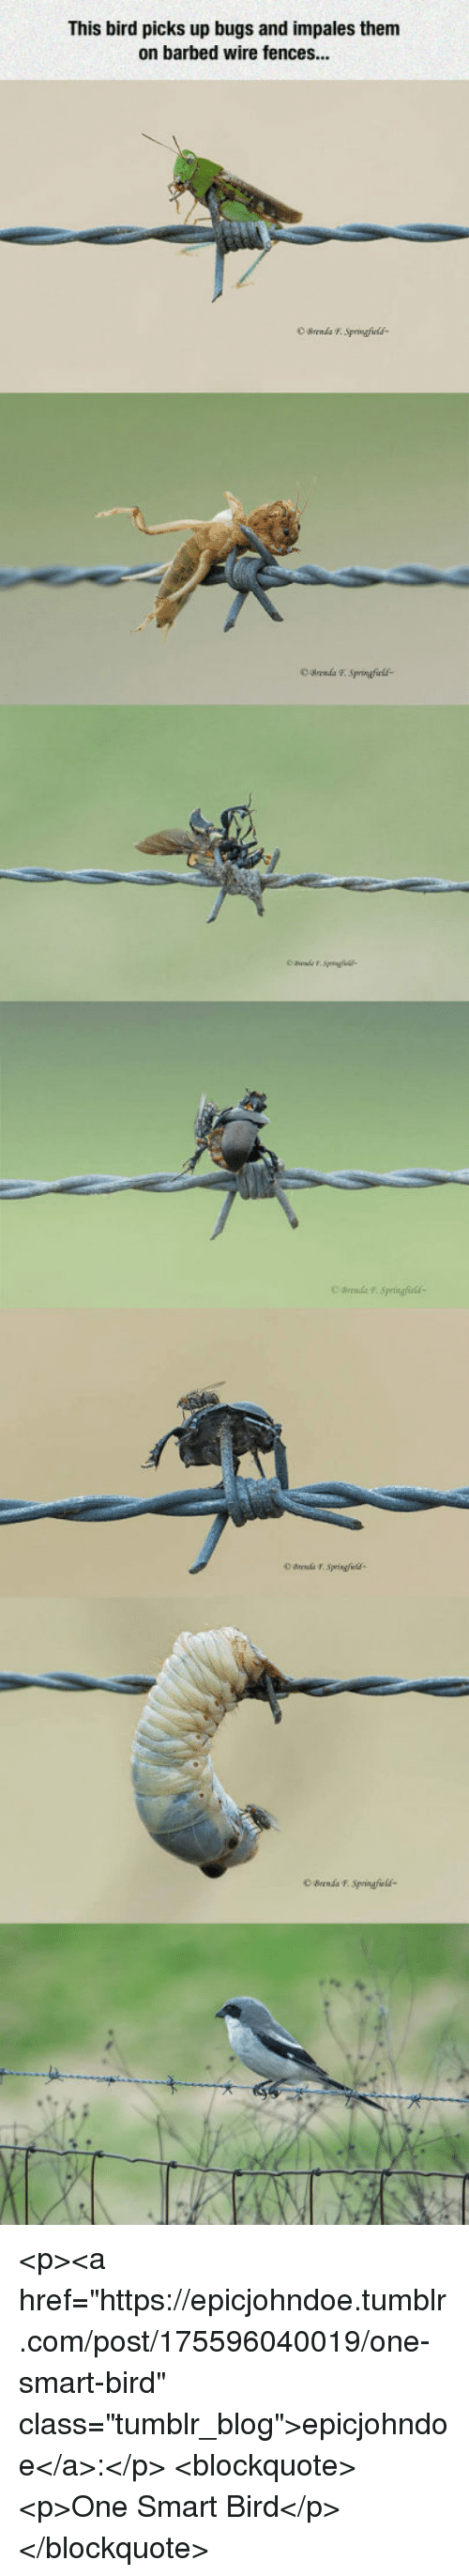 """Fences: This bird picks up bugs and impales them  on barbed wire fences...  OBrenda F. Springfcld  O Brends T Springfields <p><a href=""""https://epicjohndoe.tumblr.com/post/175596040019/one-smart-bird"""" class=""""tumblr_blog"""">epicjohndoe</a>:</p>  <blockquote><p>One Smart Bird</p></blockquote>"""